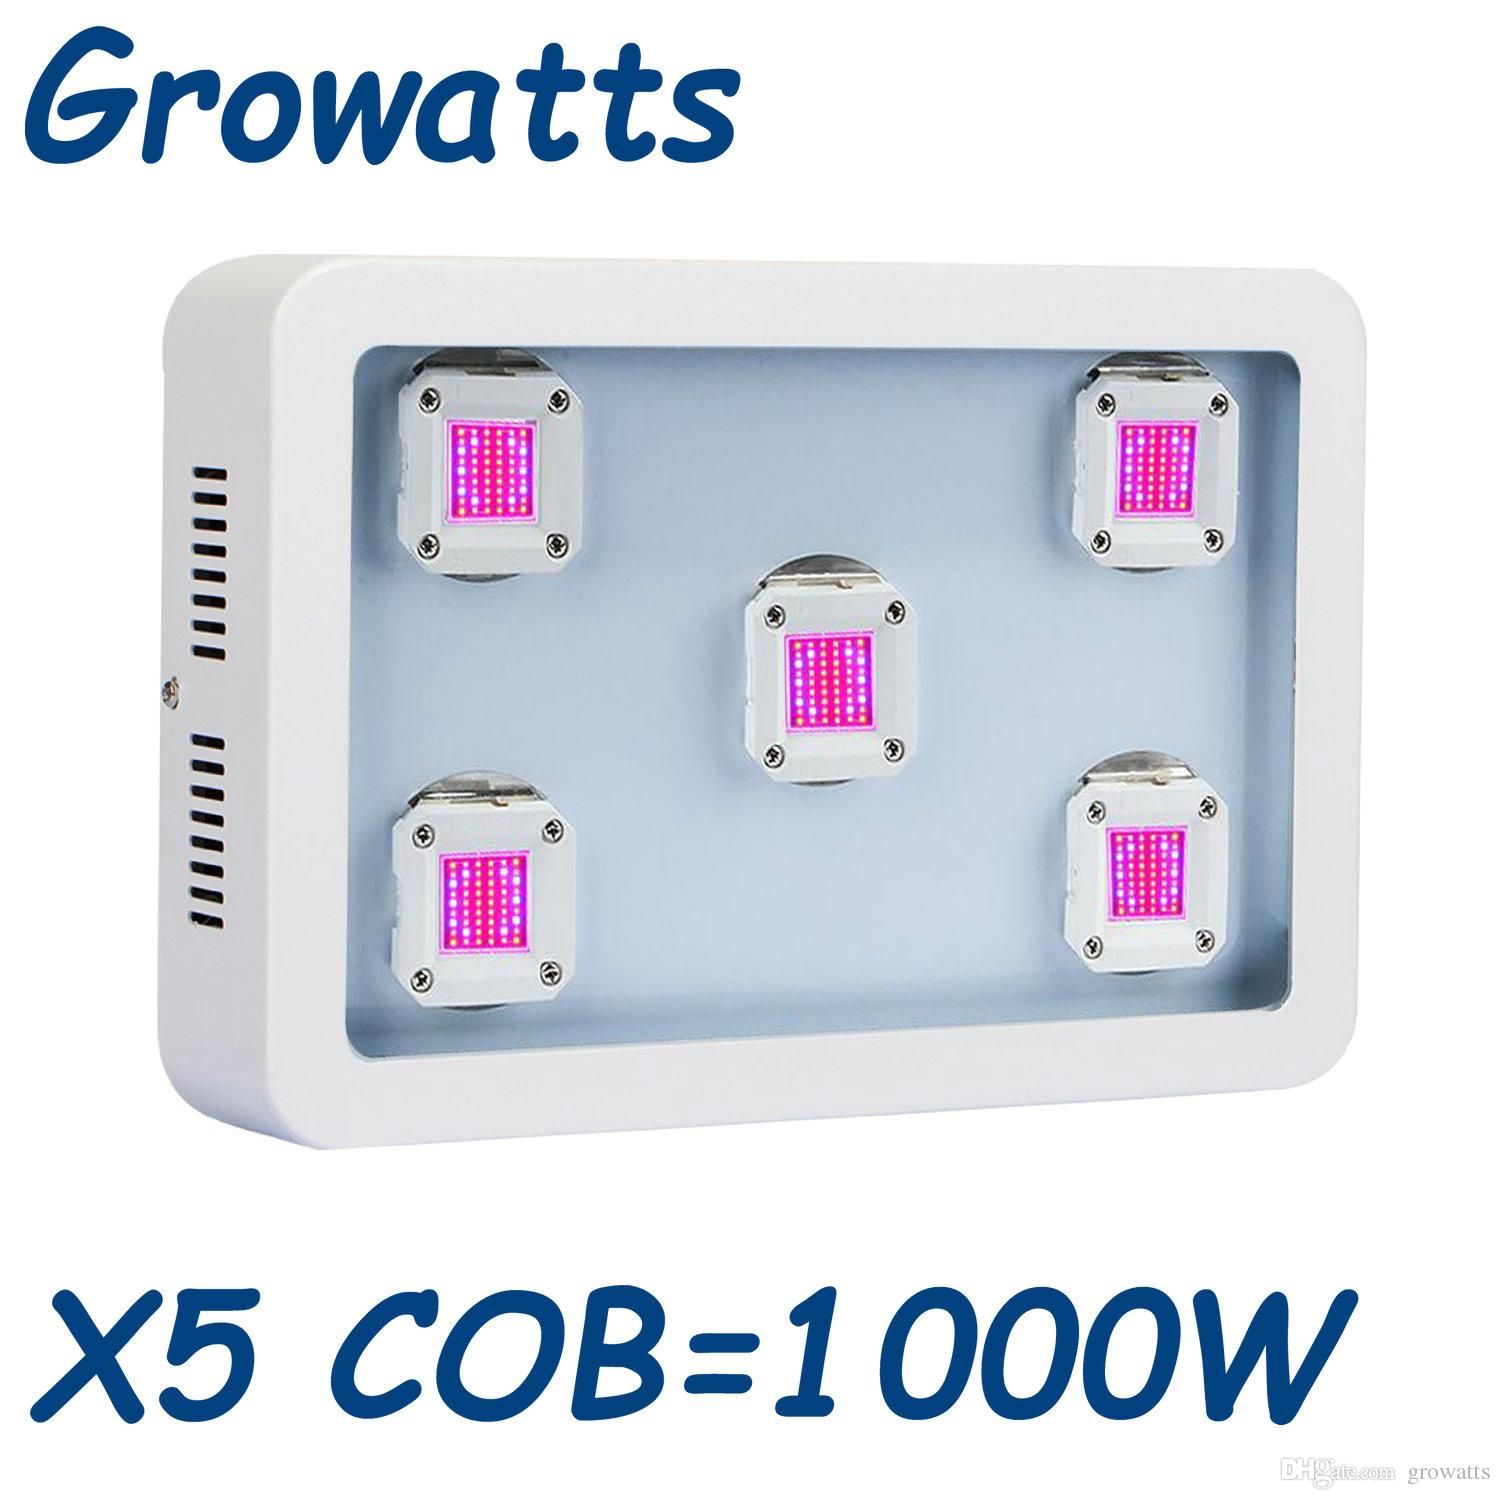 Cob Led Grow 1000: 2017 Latest COB Led Grow Light 1000w Full Spectrum Plant